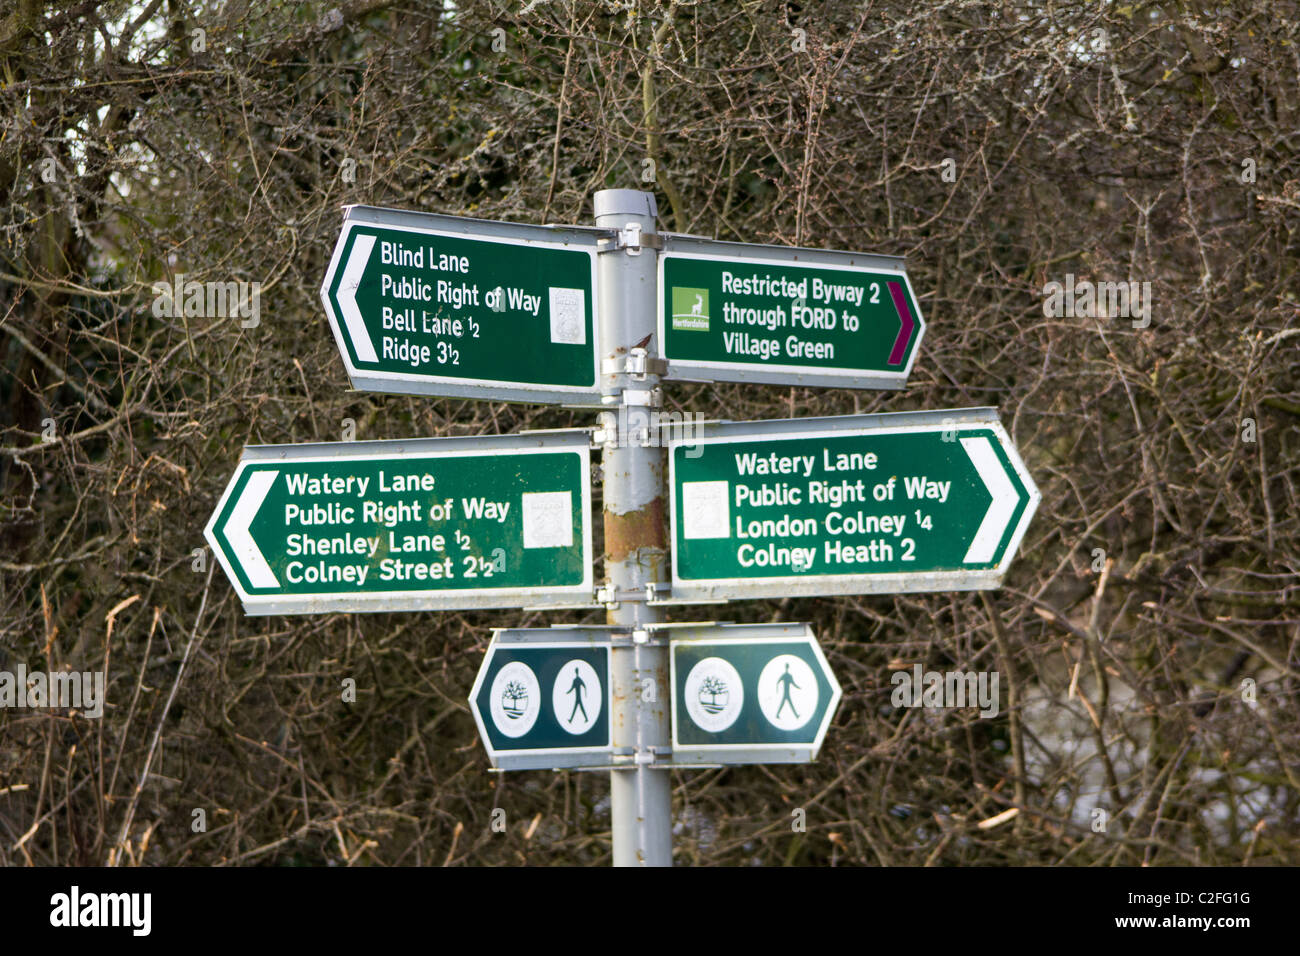 Public Right of way footpath signs - Stock Image